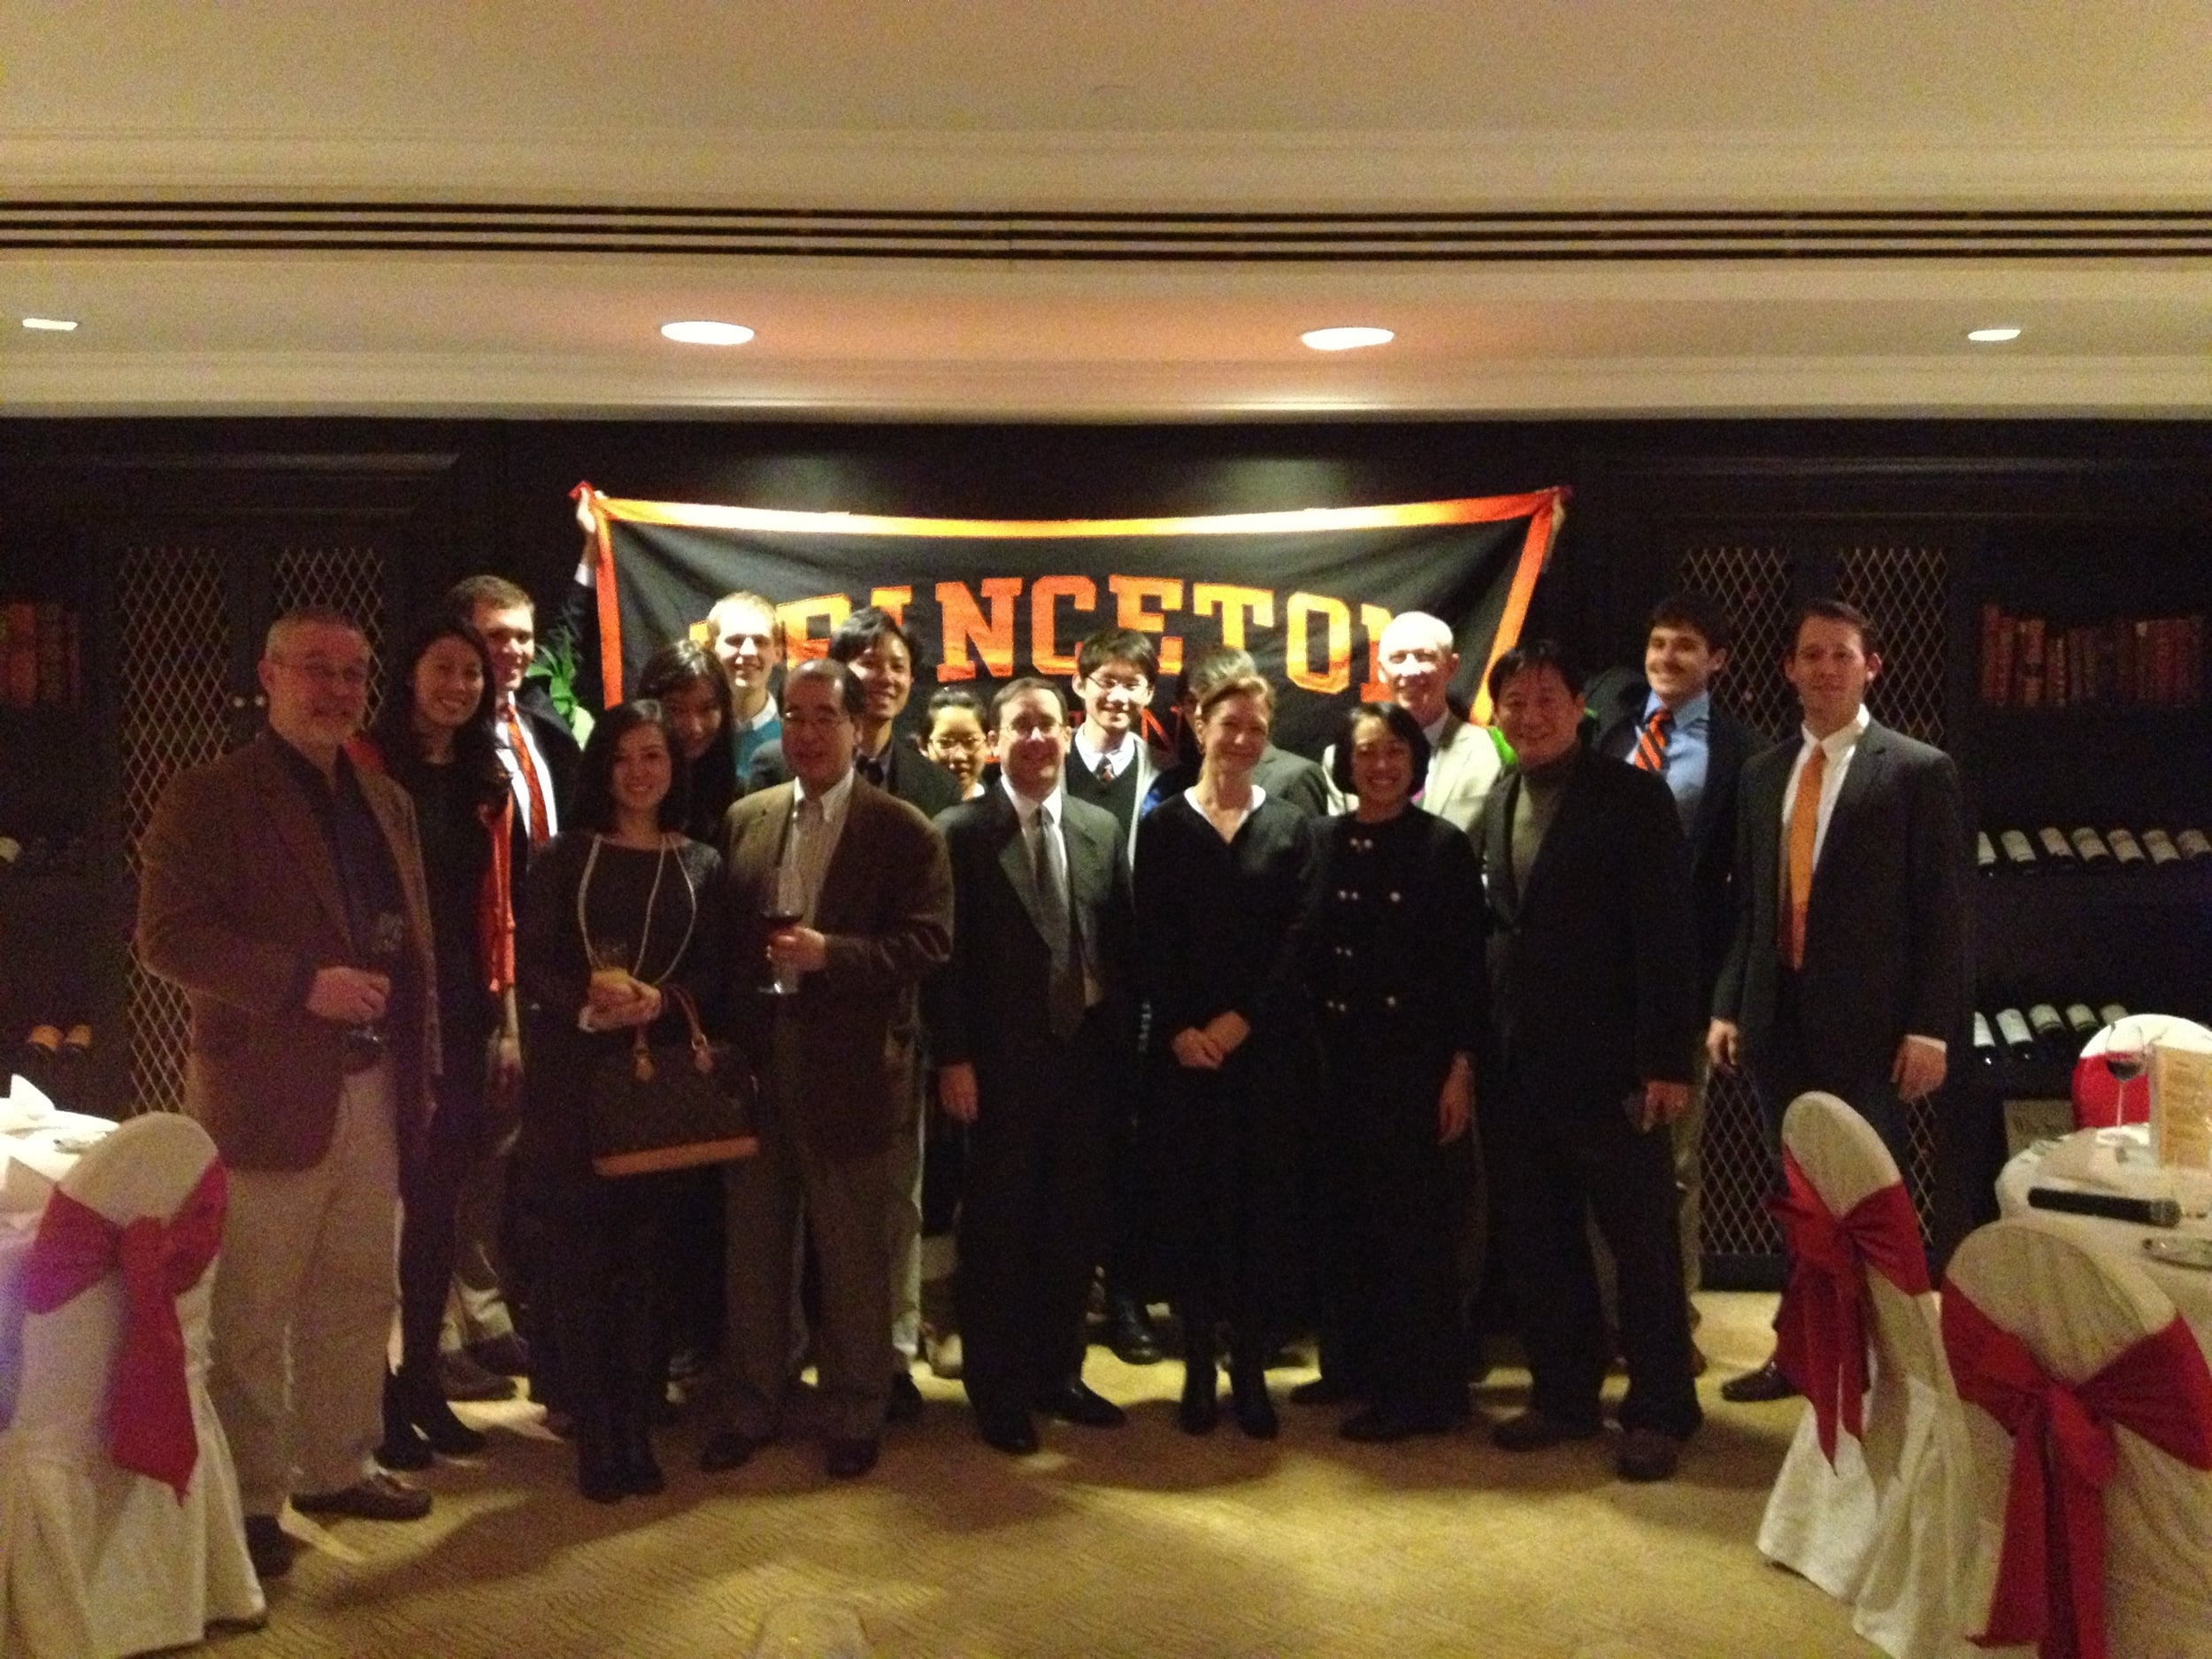 2013/1/23    Dinner with Princeton Administrators and Faculty Members